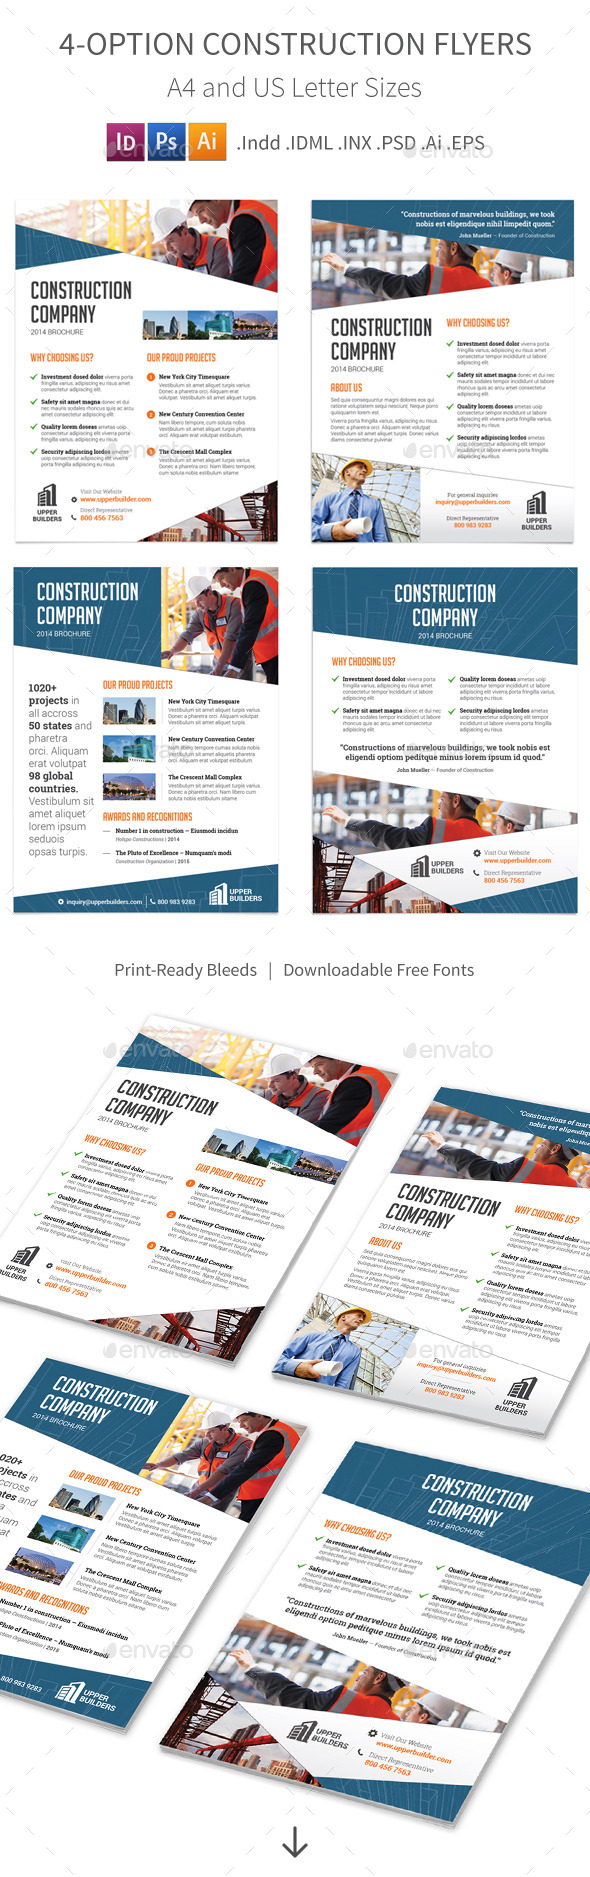 GraphicRiver Construction Company Flyers 4 Options 9056220